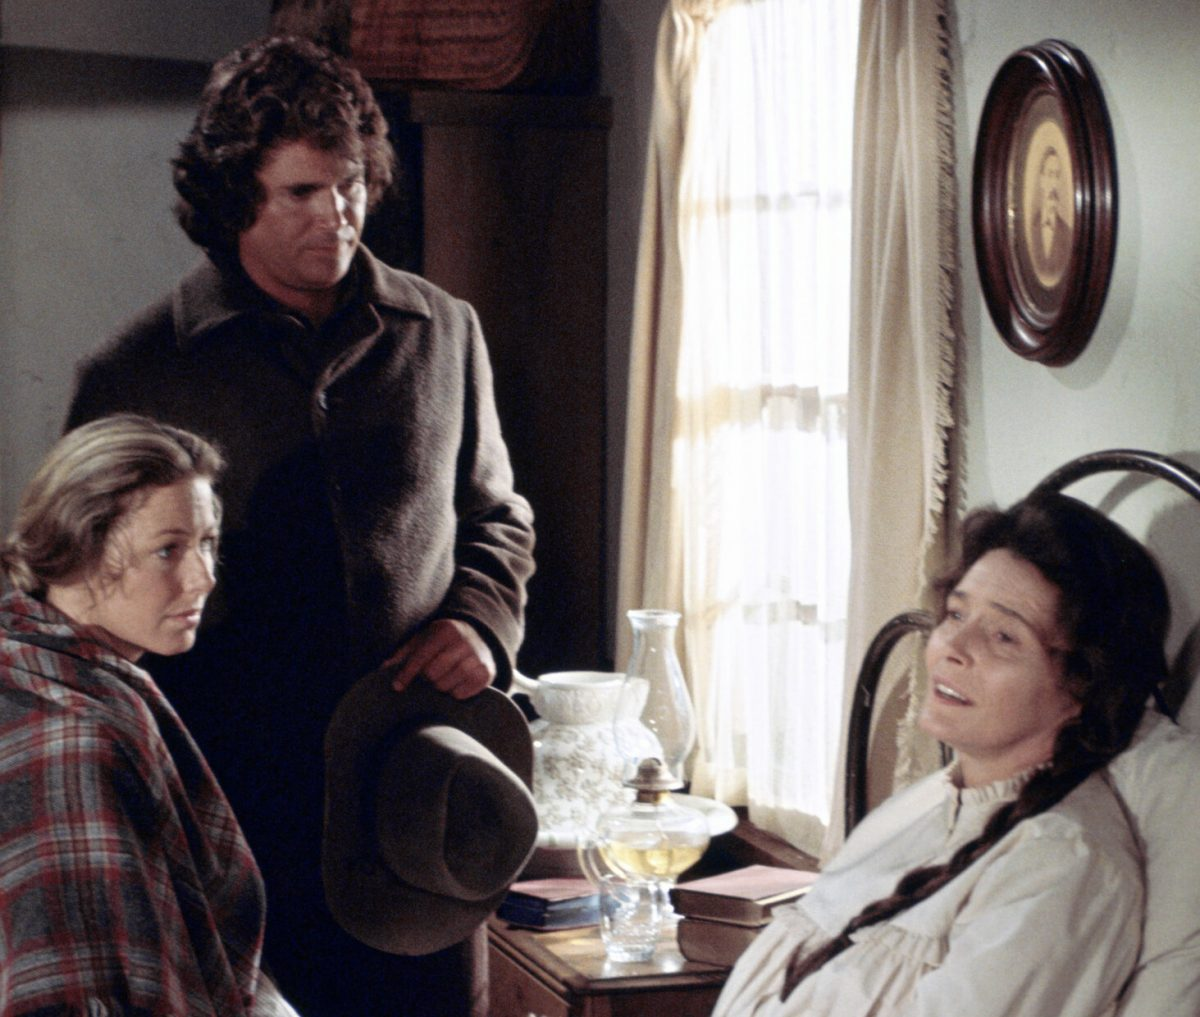 Patricia Karen Grassle as Caroline Quiner Holbrook Ingalls, Michael Landon as Charles Philip Ingalls, Neal as Julia Sanderson on 'Little House on the Prairie'